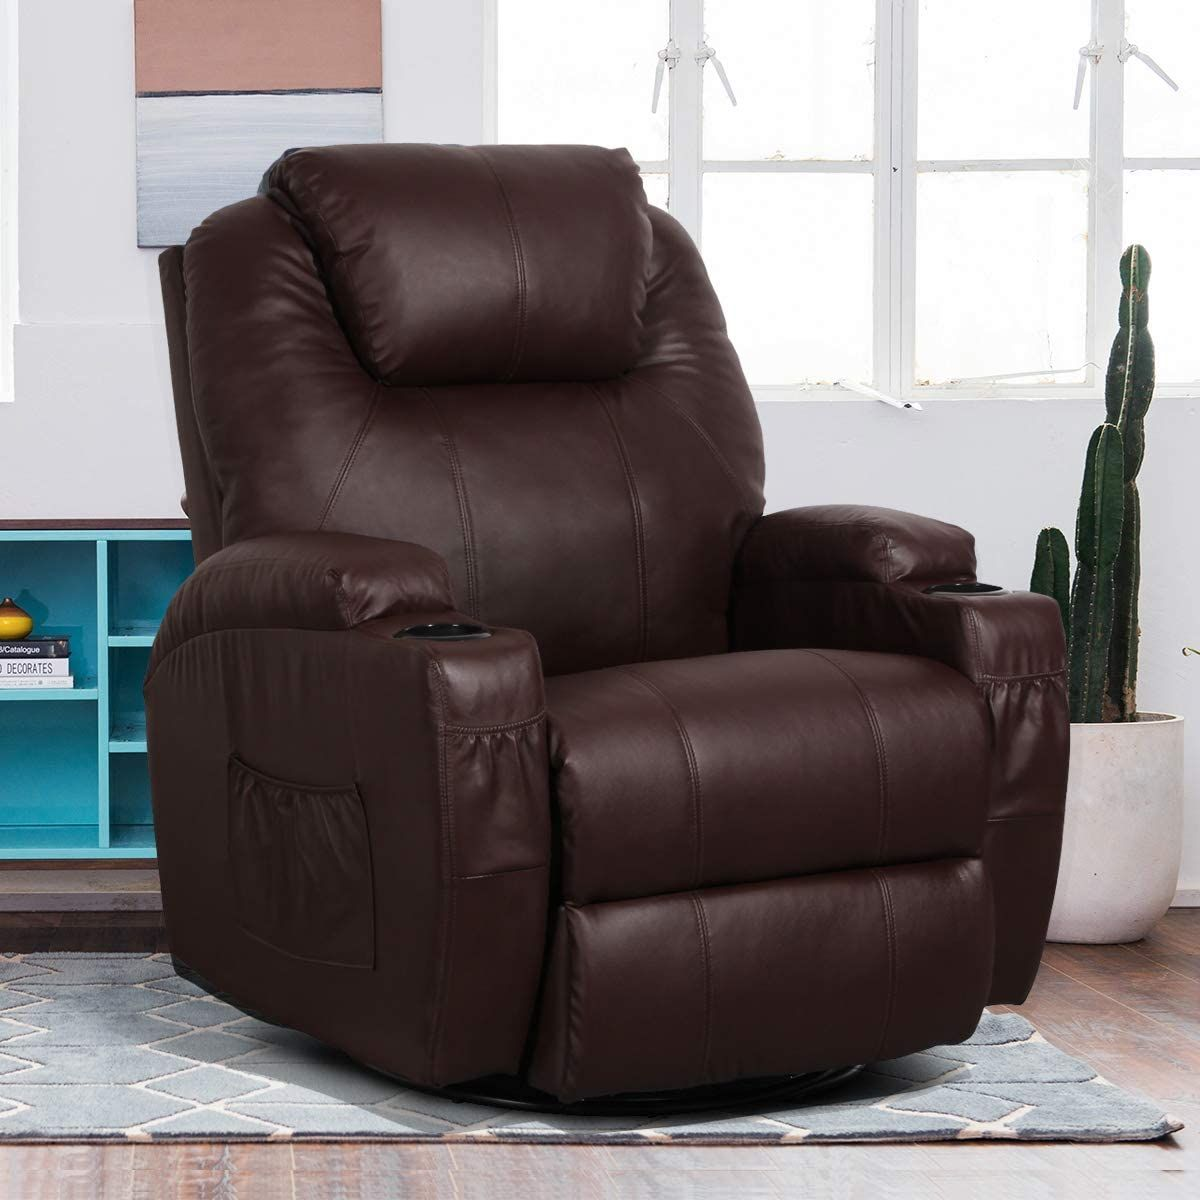 YODOLLA 360° Swivel & 140° Recling Massage Recliner Sofa